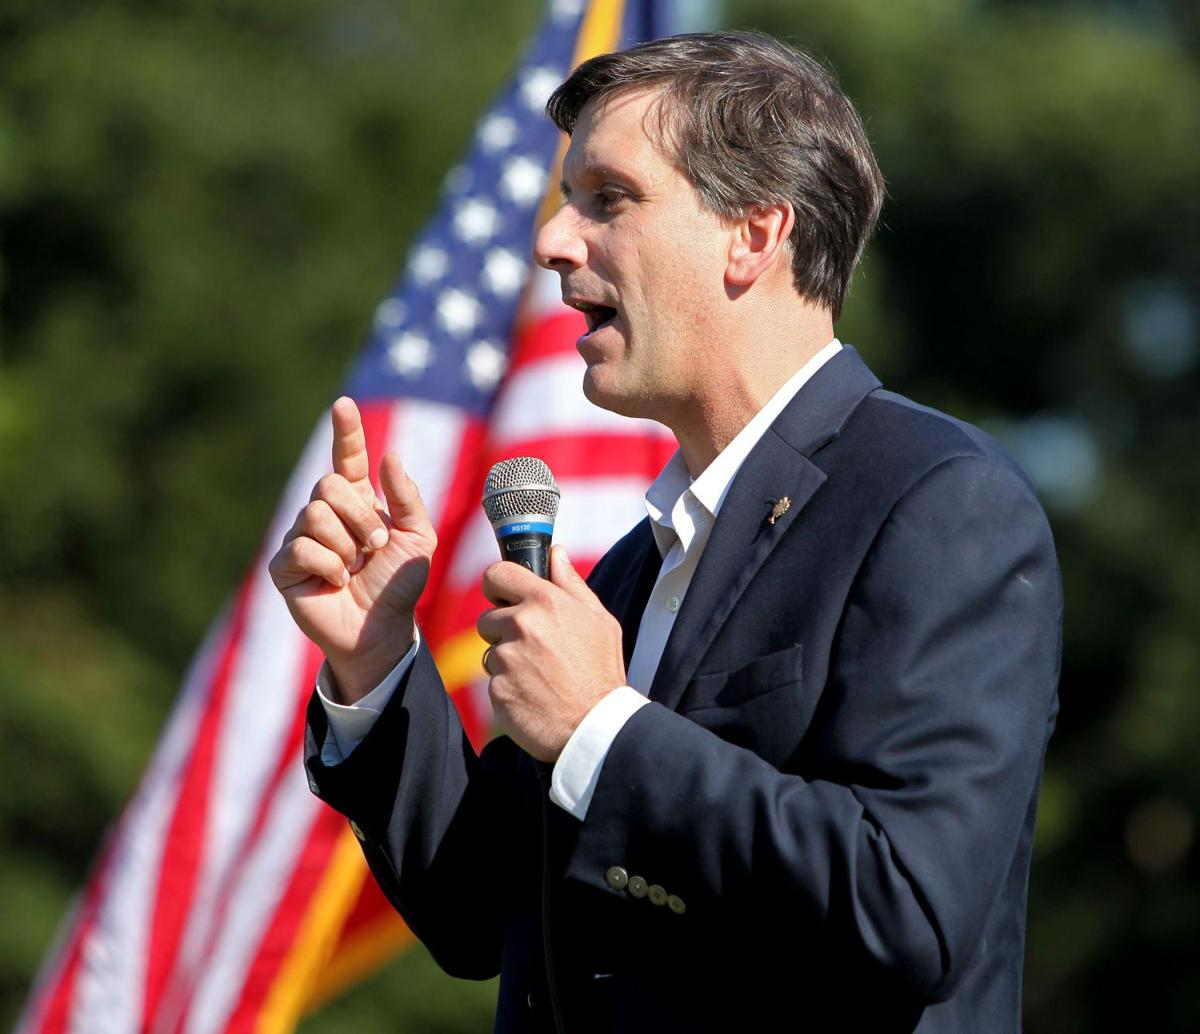 S.C. Democrats pin hopes on Sheheen this year